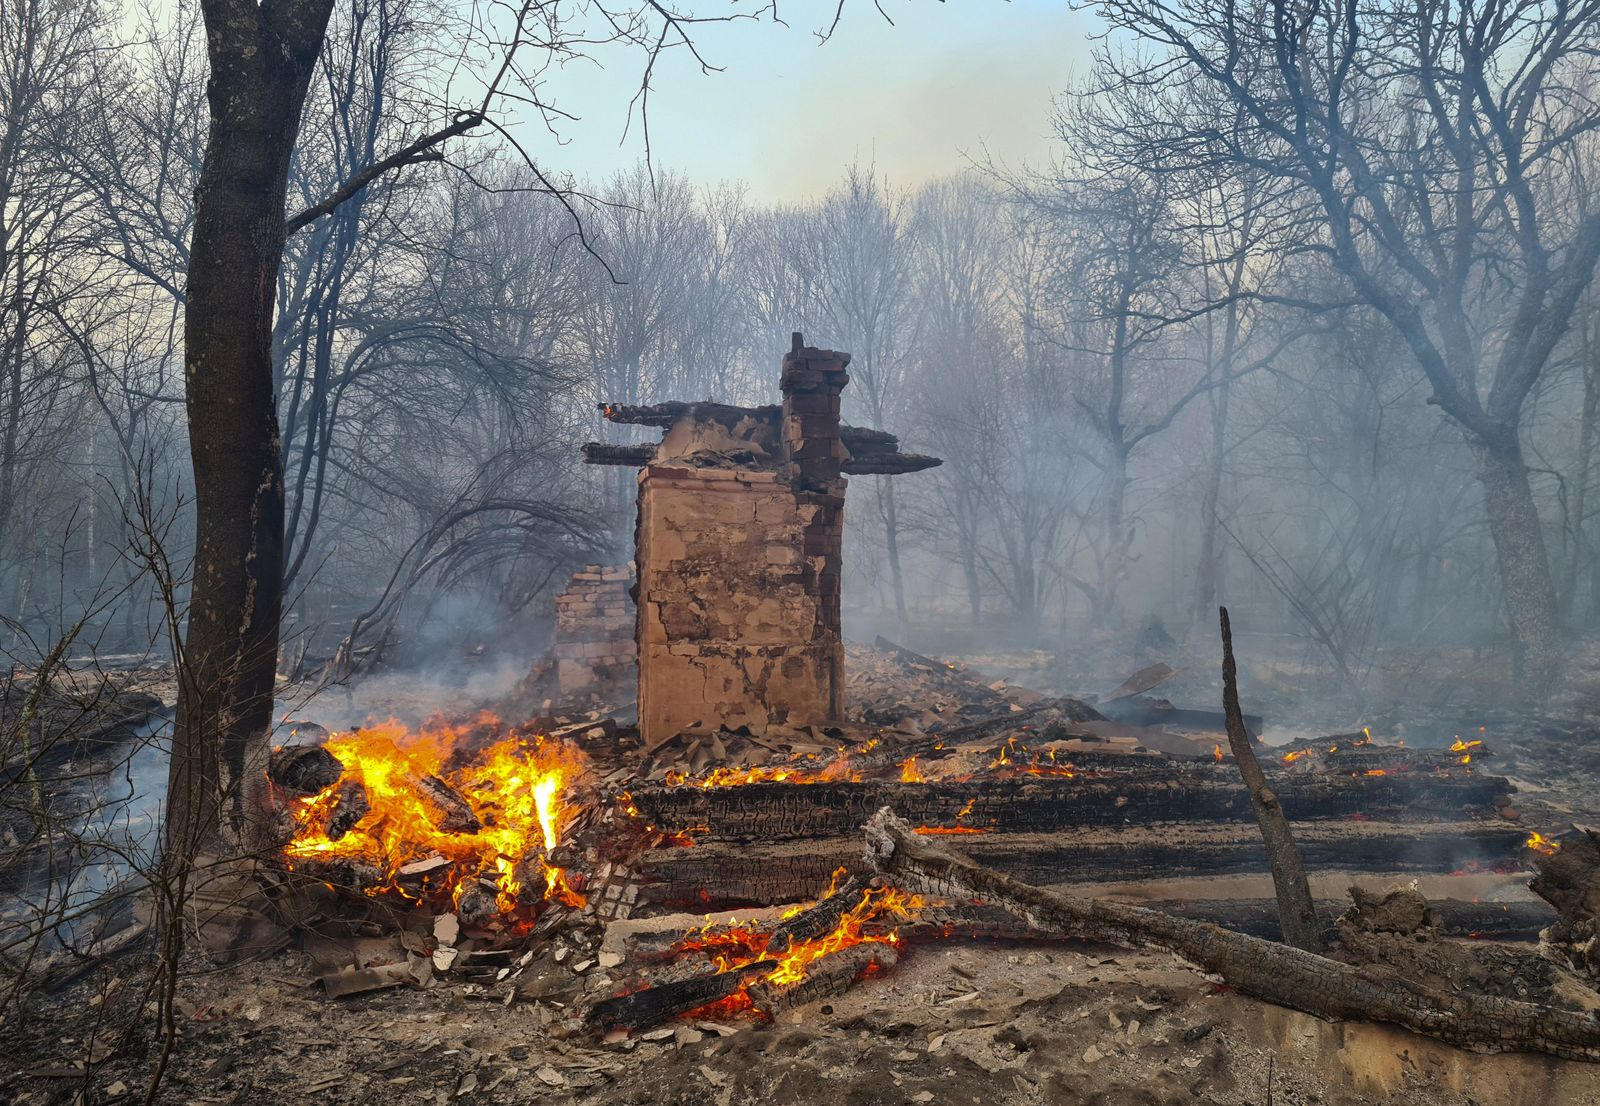 An unhabited house burns in the middle of a forest fire near the village of Volodymyrivka, in the exclusion zone around the Chernobyl nuclear power plant, Ukraine, Sunday April 5, 2020.{ } (AP Photo/Yaroslav Yemelianenko)